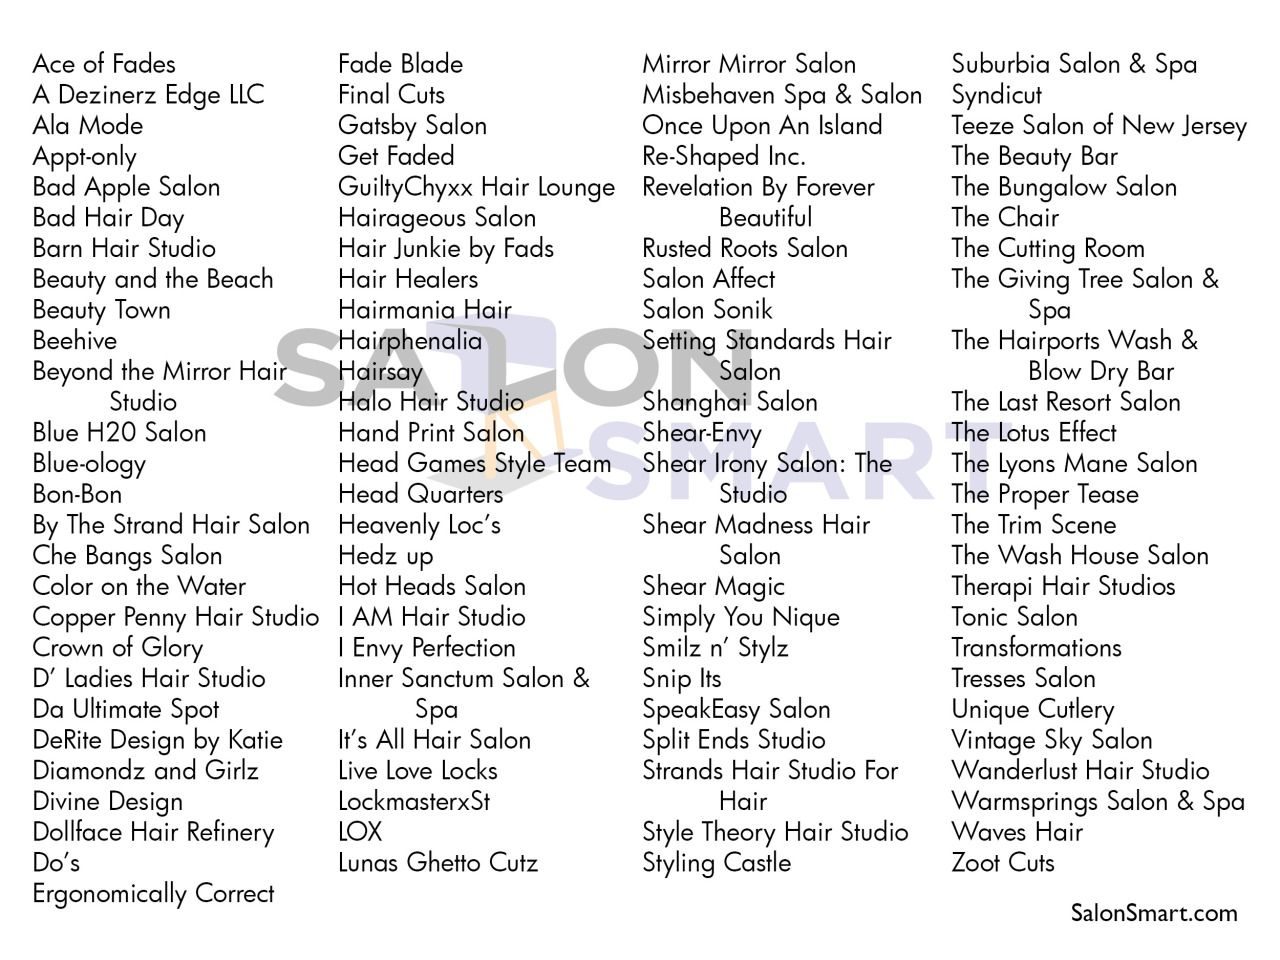 Pin By Anil Chand On Easy Recipes In 2019 Pinterest Hair Salon